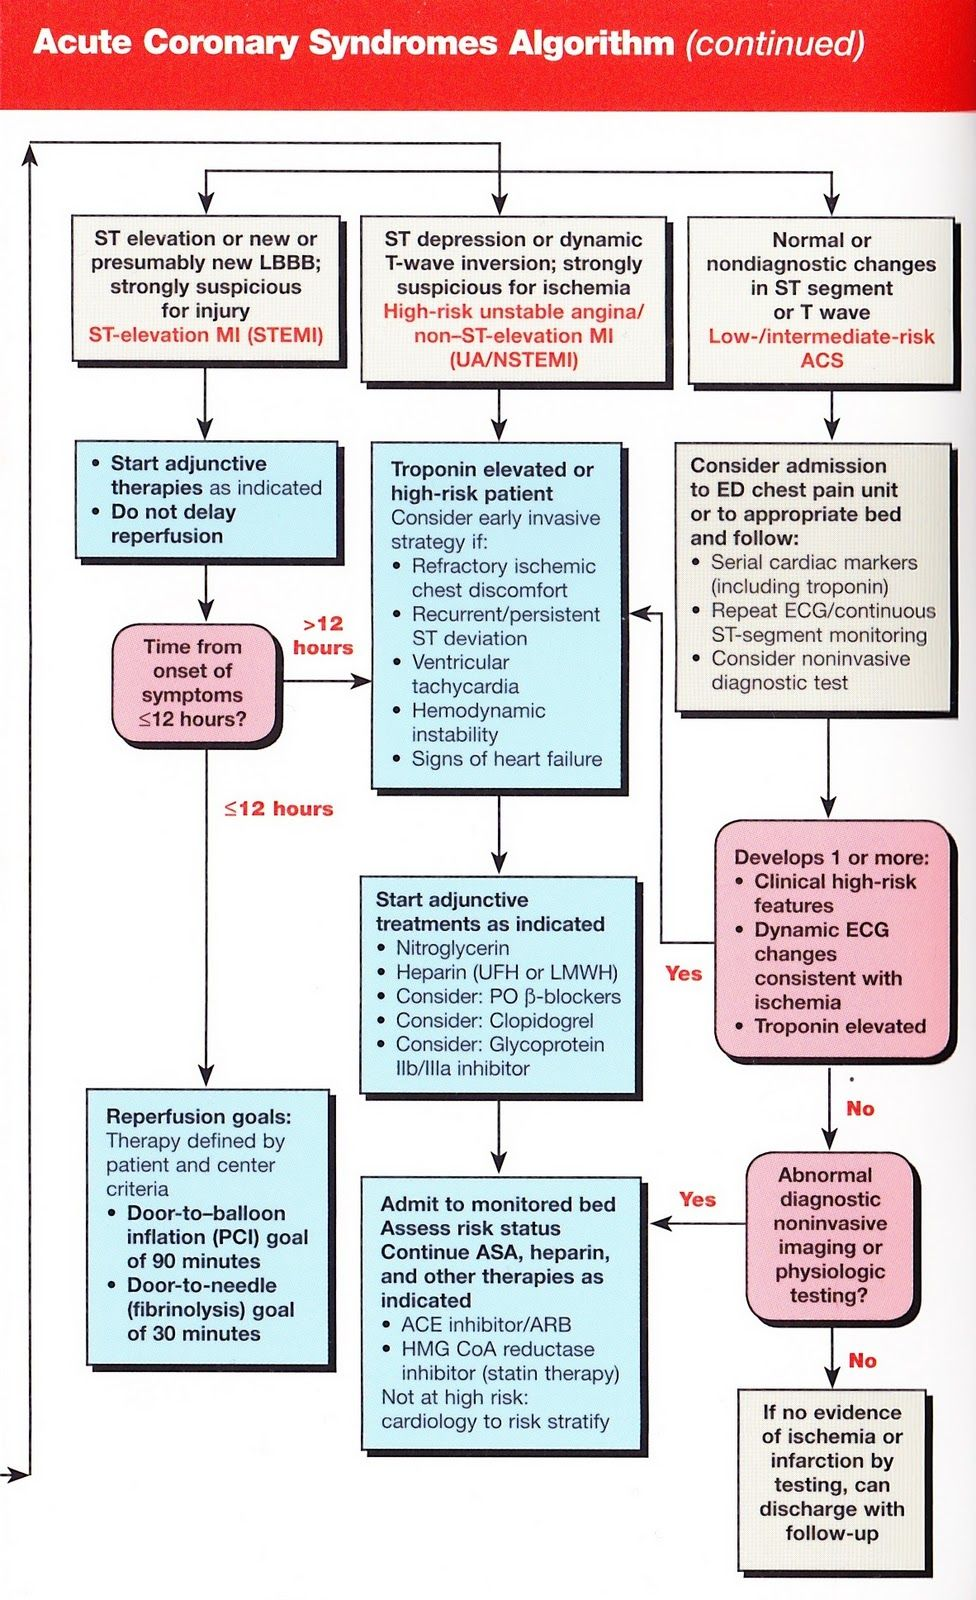 Adult coronary syndromes continued aclsbls pinterest acls medications nvjuhfo Images